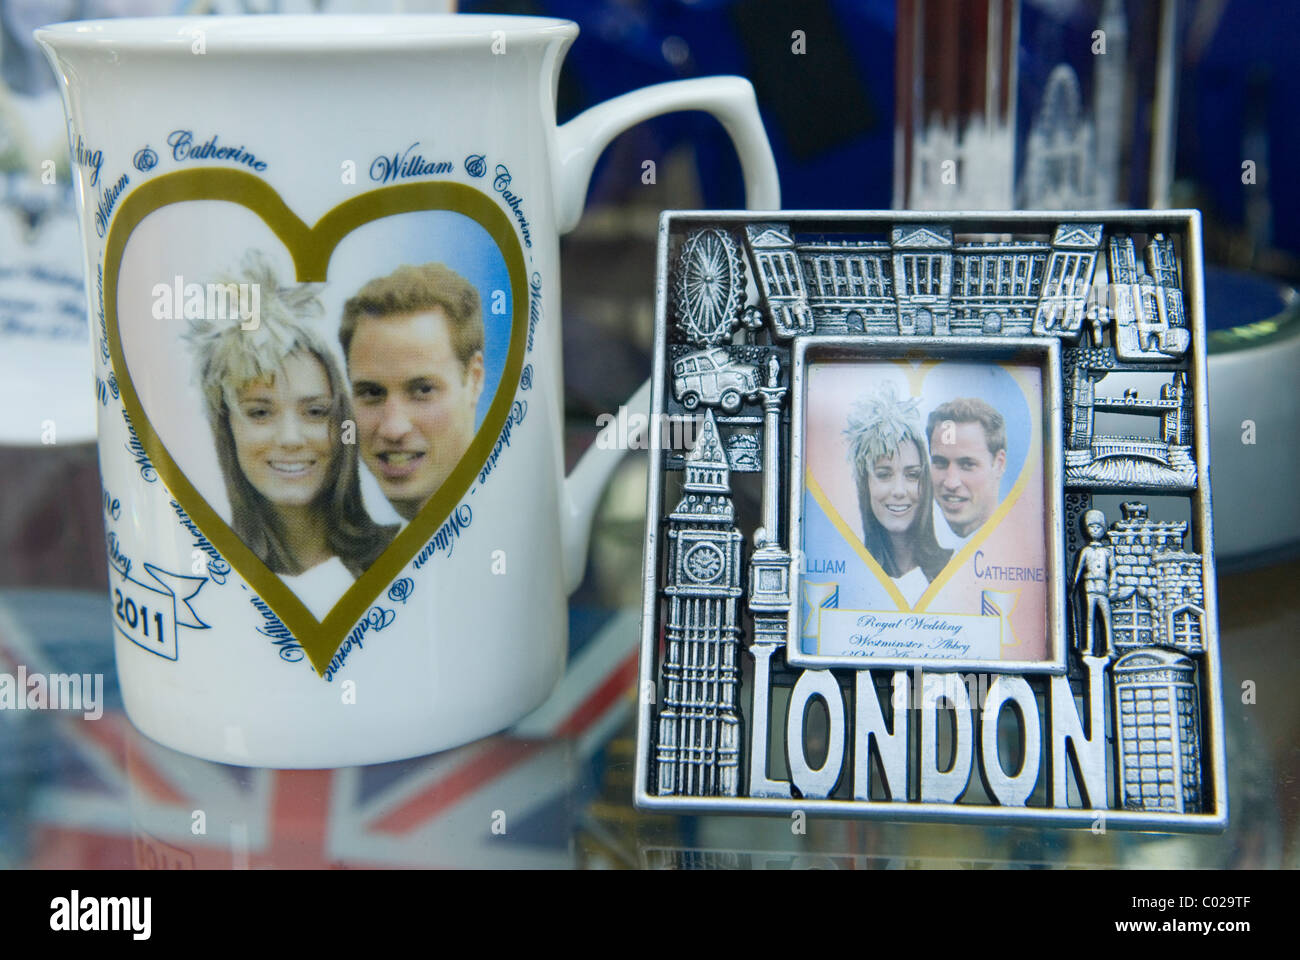 Prince William and Kate Middleton Royal Wedding memorabilia. London shop window. 2011 HOMER SYKES - Stock Image